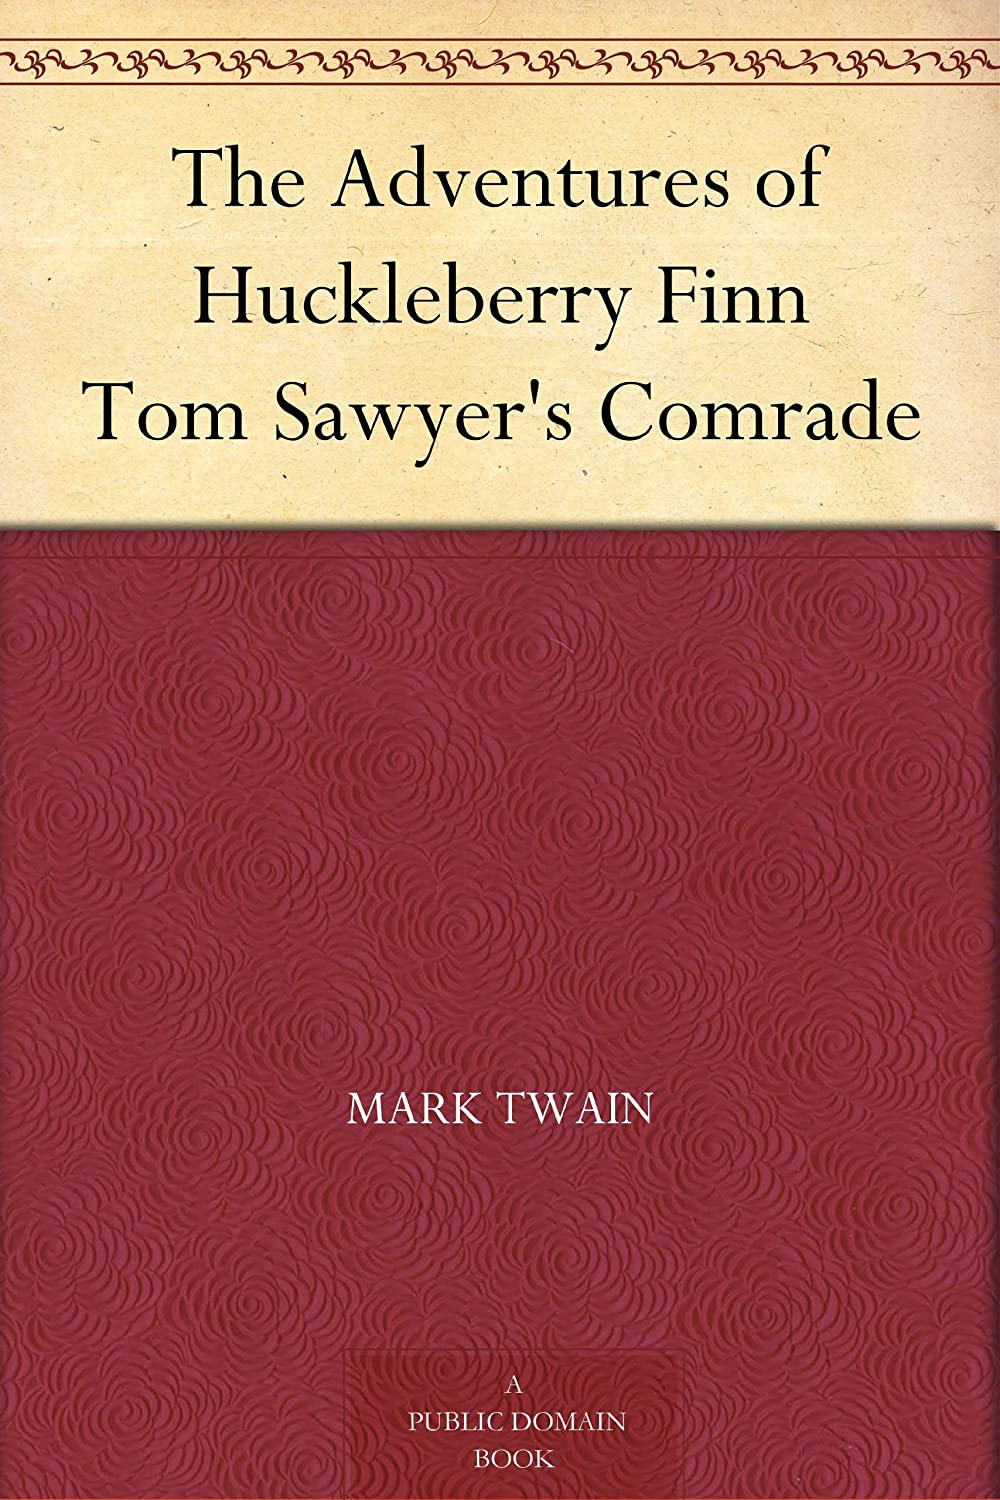 an analysis of the short essay only a negro by mark twain The adventures of tom sawyer: concept analysis literary text: the adventures of tom sawyer by mark twain (bantam classic 2004 edition) summary and organization:  also, i could teach only certain chapters which are less difficult to read and understand for these students.